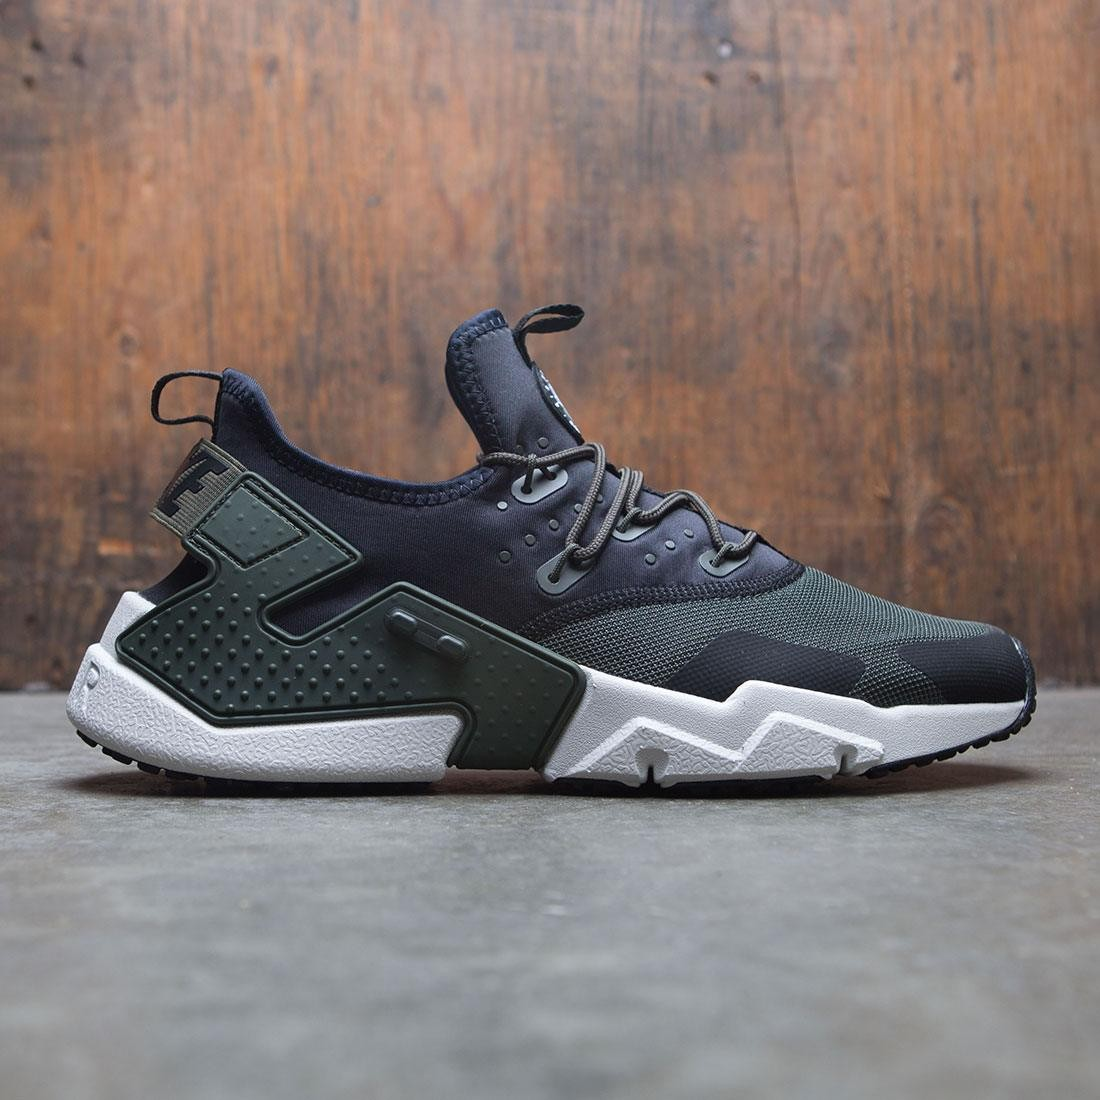 0a4803758778 ... running fashion sneakers shoes 318429 003 rare 9e4b2 2ecab  italy nike  men air huarache drift sequoia light bone black white 5ff0c 22e89